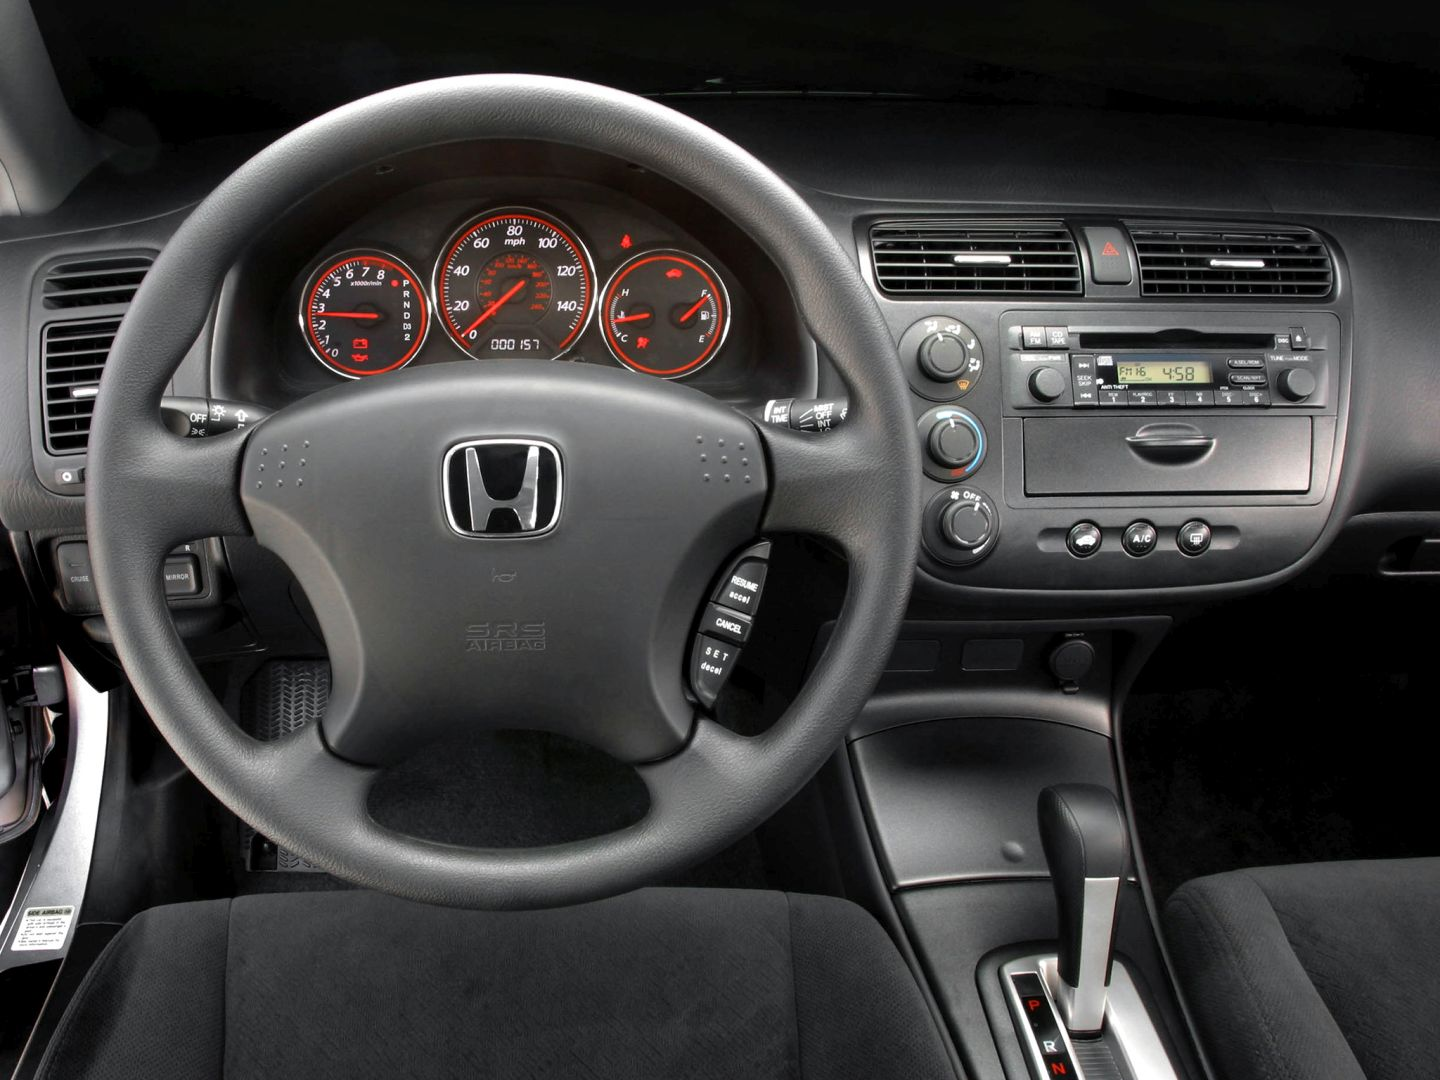 This Secret Feature On A 2005 Honda Civic Will Make You Nod Your